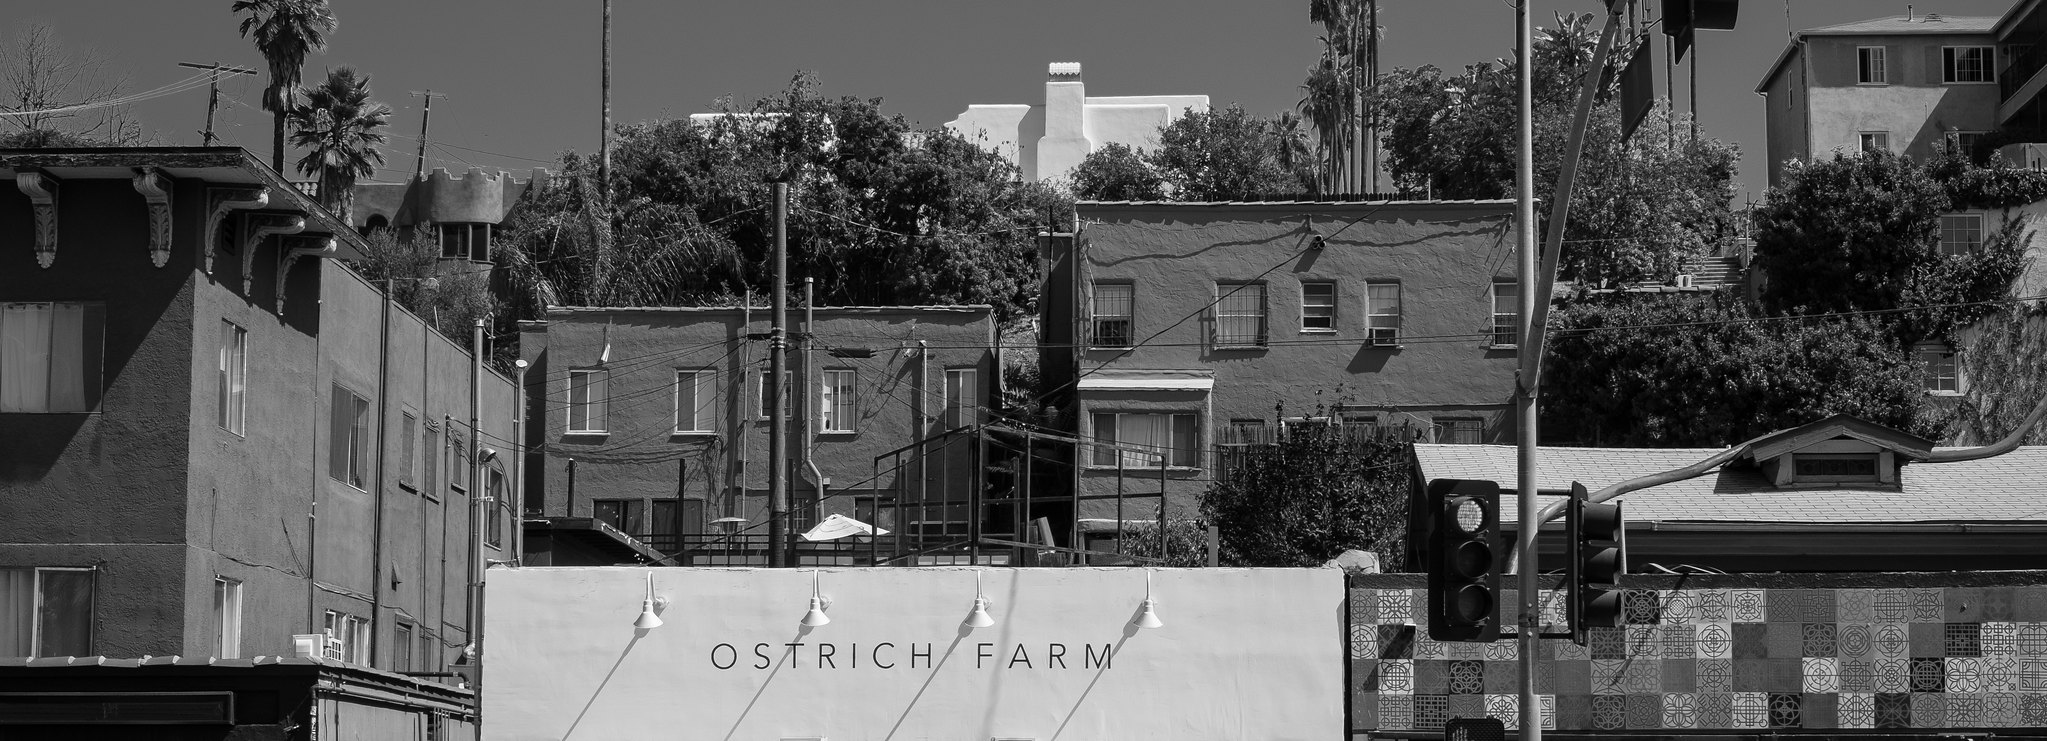 Ostrich Farm | by michaelj1998